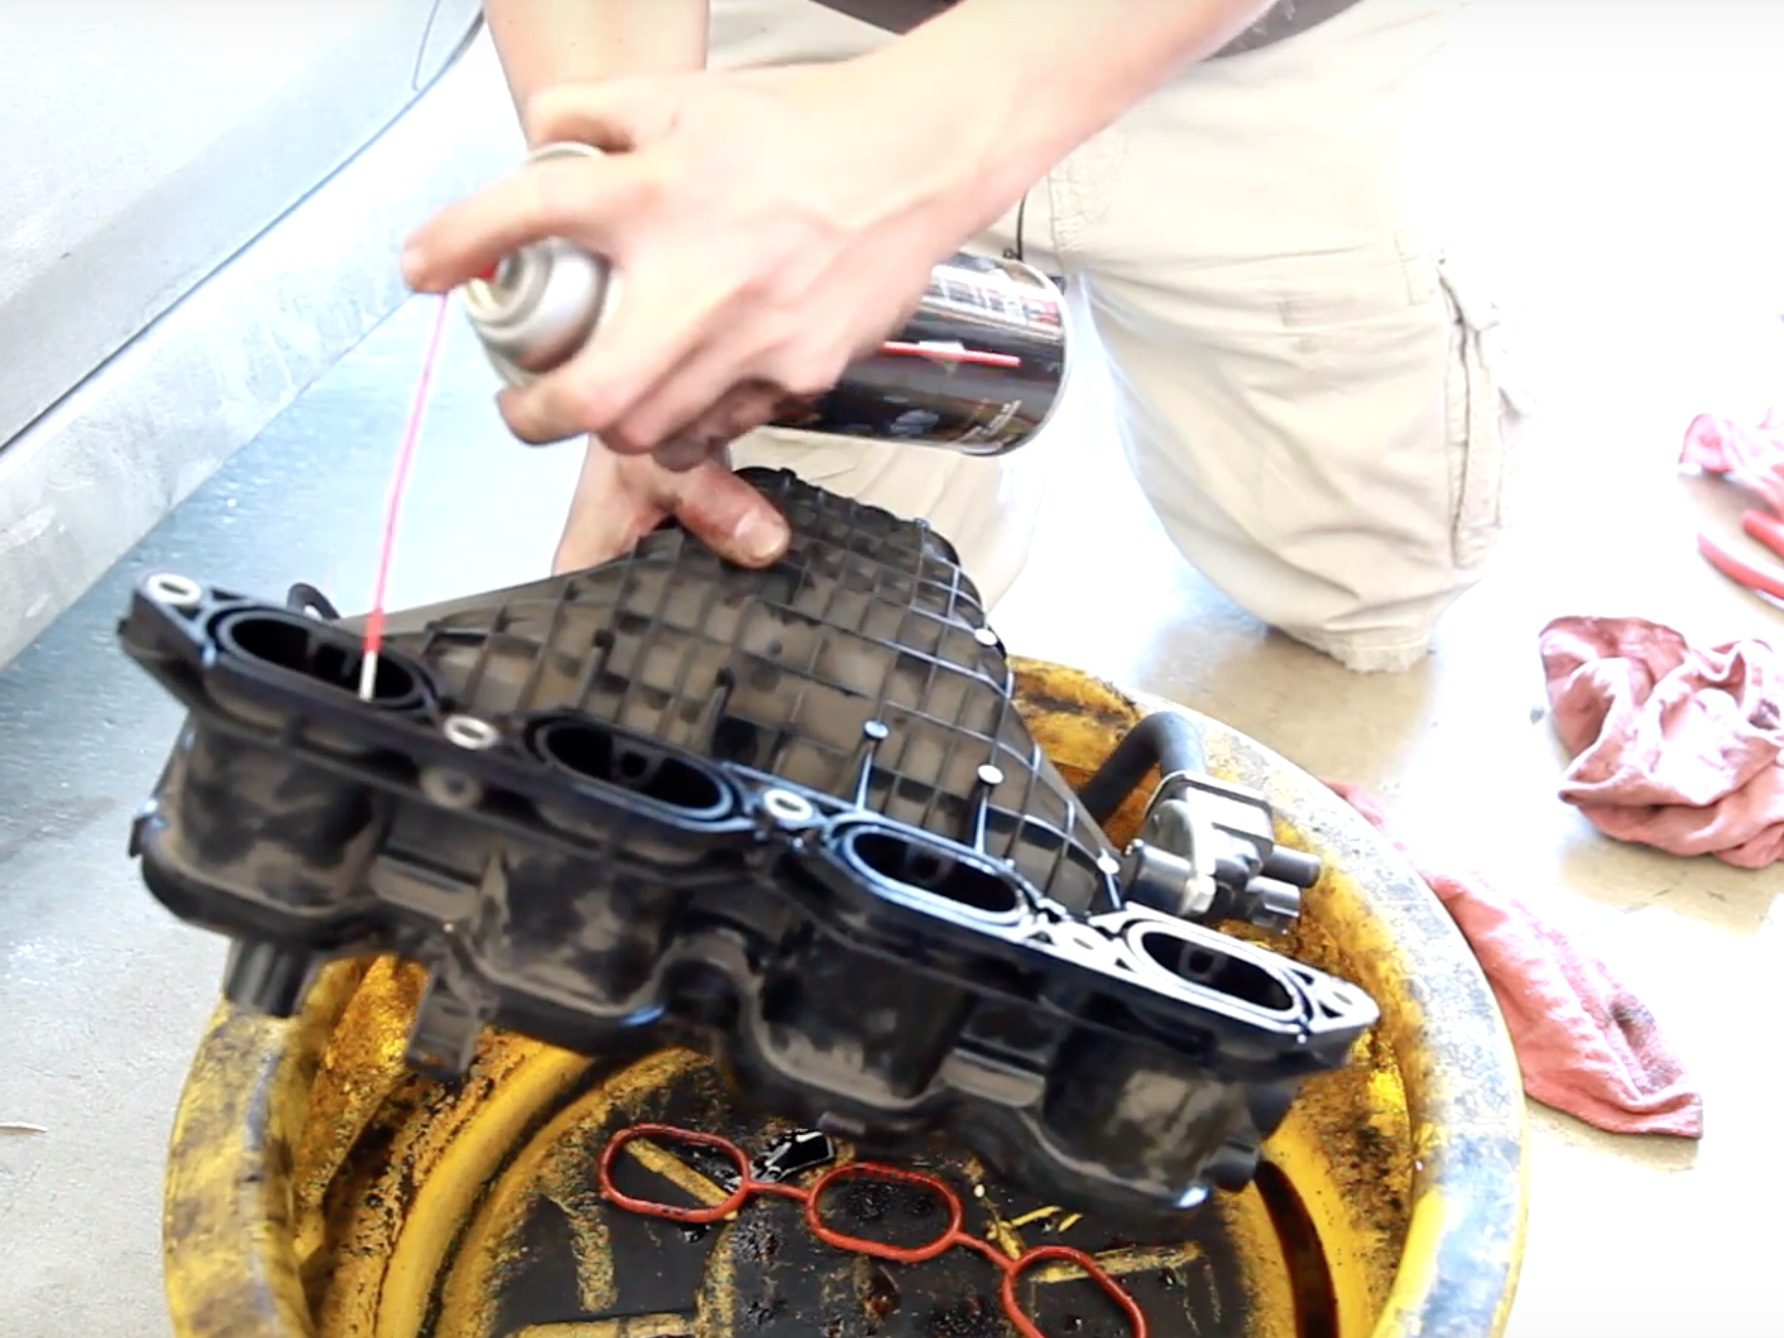 how to clean an intake manofold